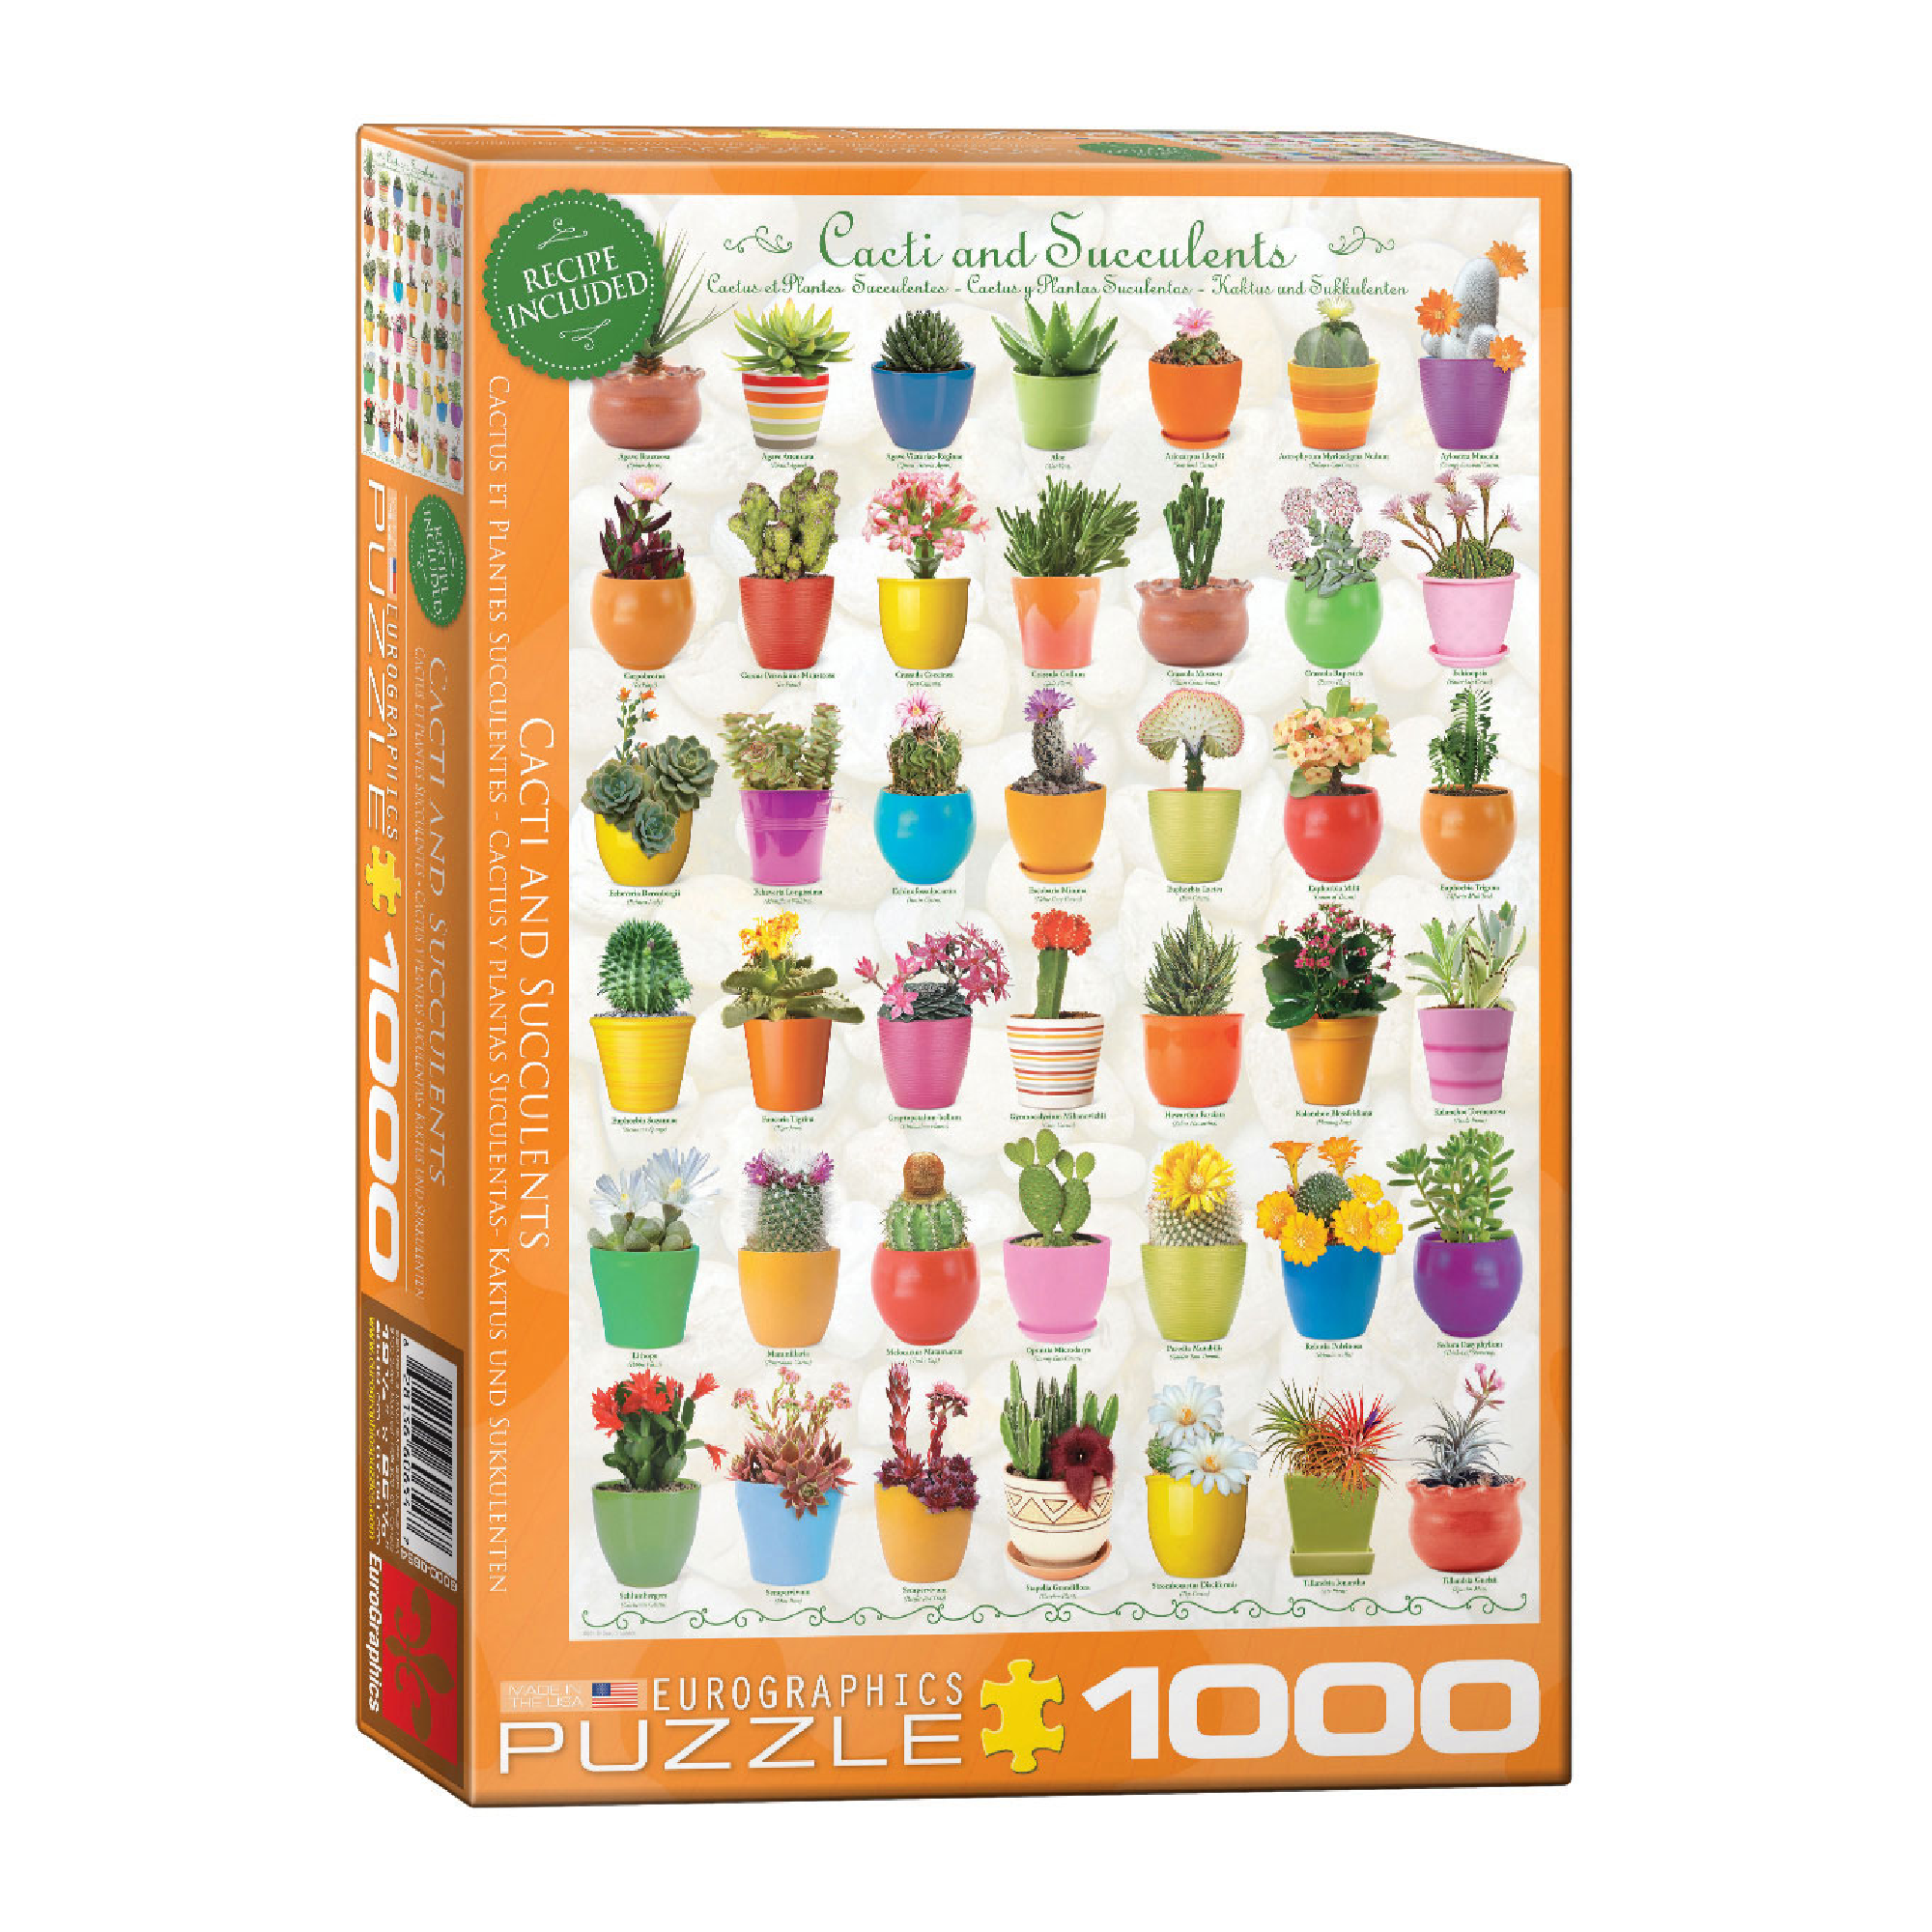 Eurographics Puzzle 1000: Cacti and Succulents